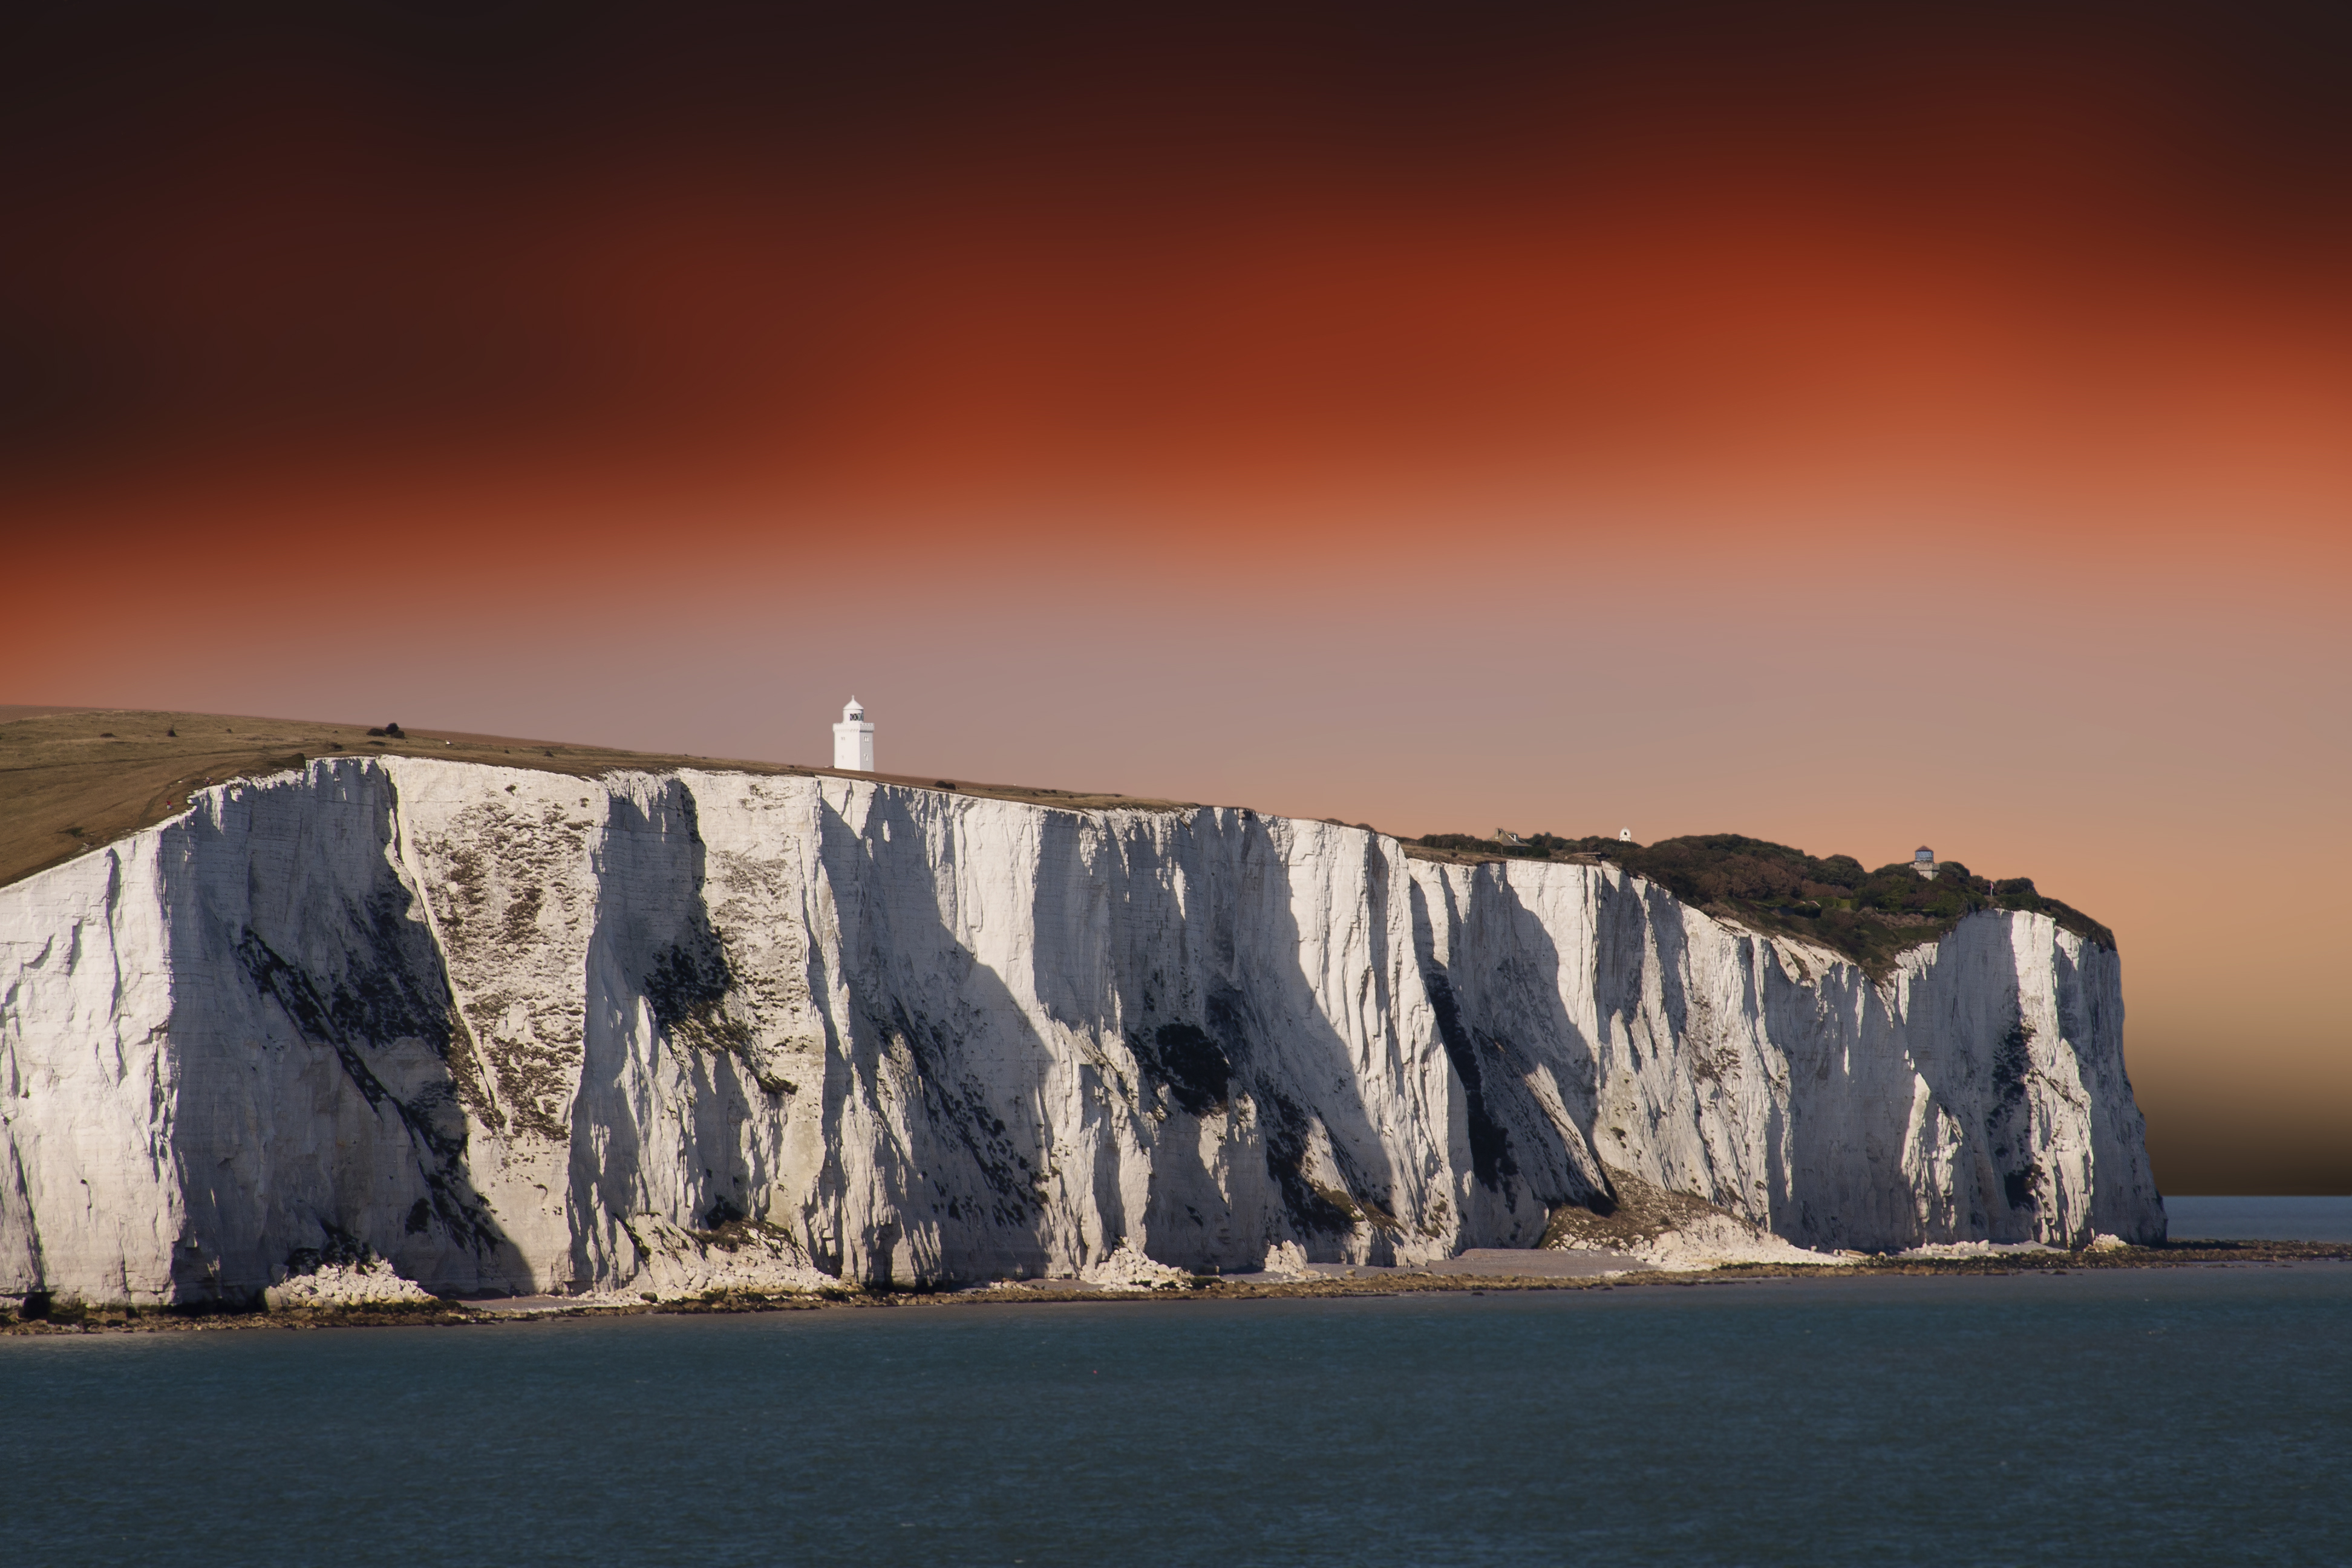 SMC Coach Hire can take you to White Cliffs of Dover this August Bank Holiday